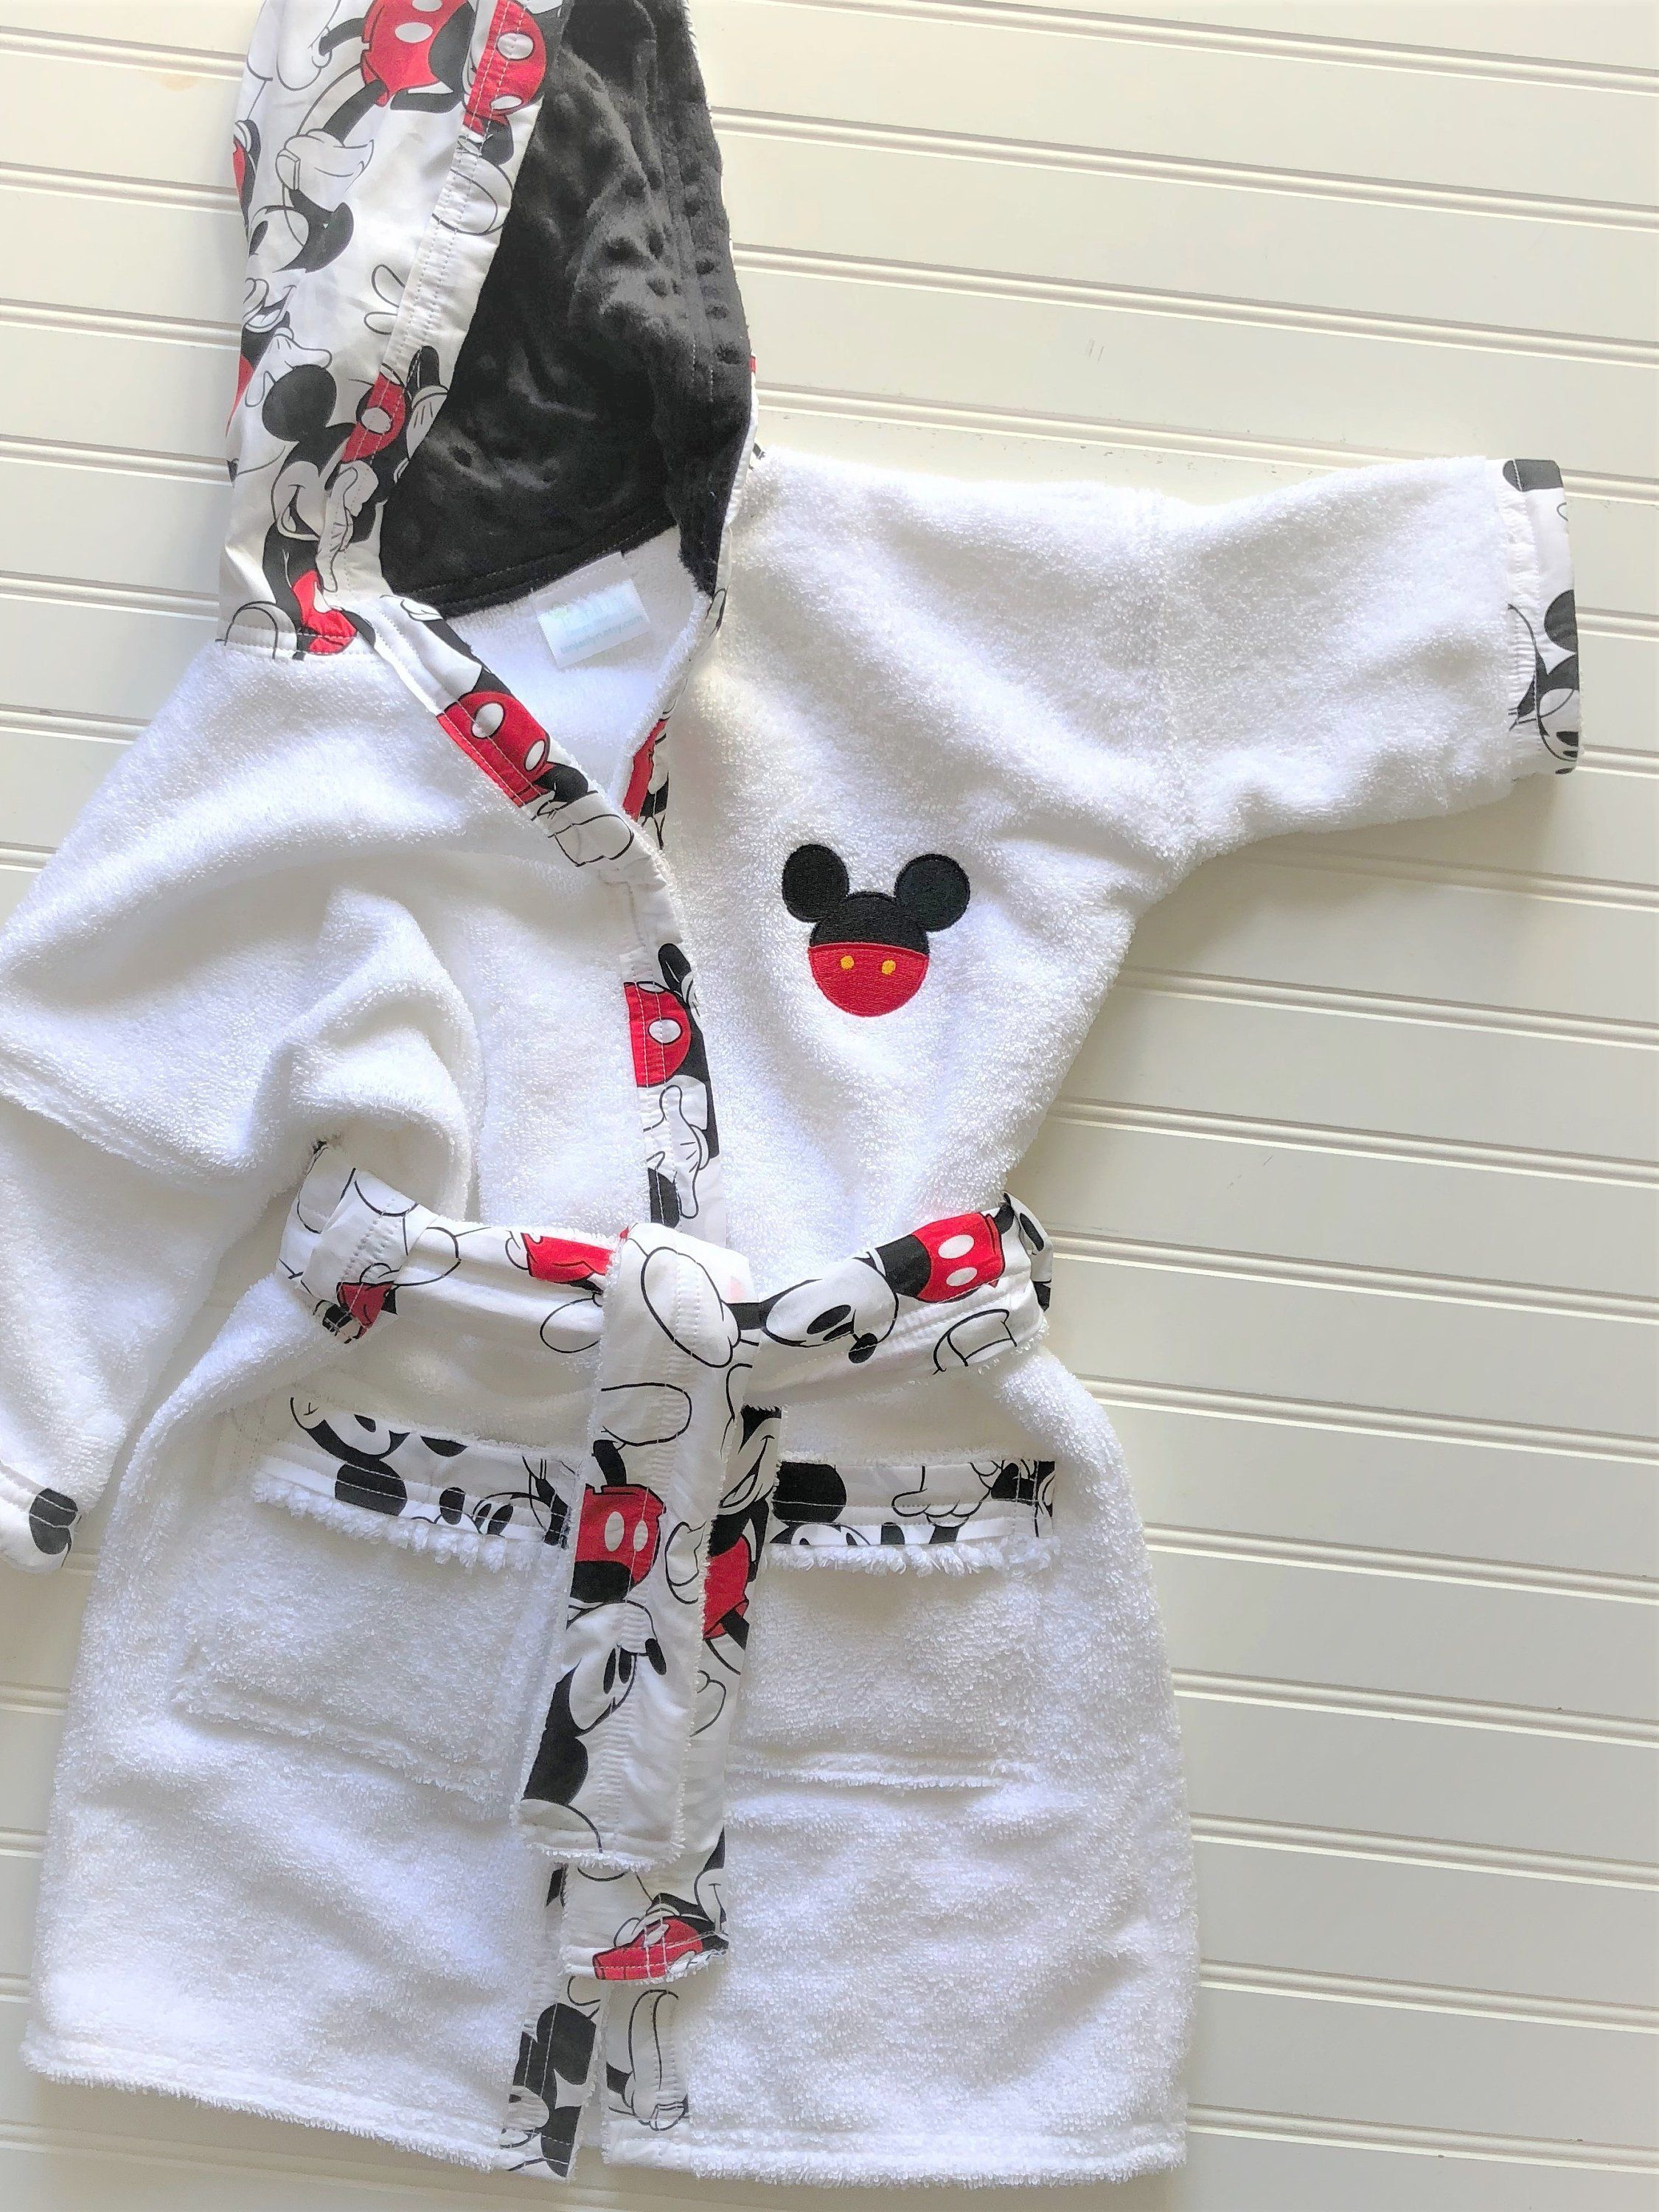 875a599ede Personalized-Boys-Bath-Robes-Bathrobes-Hooded-Towels-Mickey-Mouse-Swimwear- Terry-Beach-Cover-Up-Baby-Toddler-Birthday-Holiday-Kids-Teen-Gift by  tanjadlyn on ...